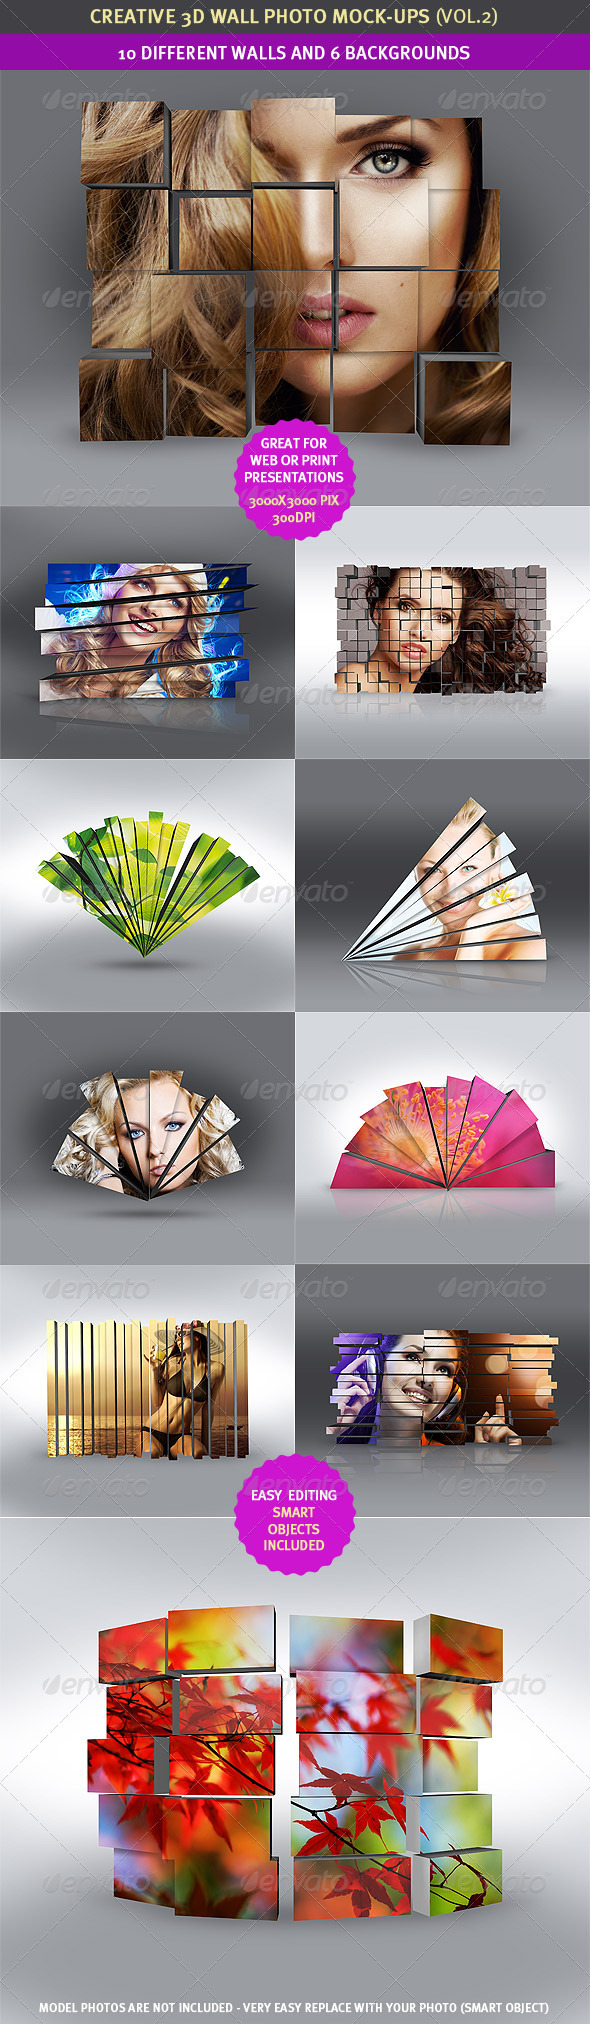 3D Wall Photo Mock-Ups 2